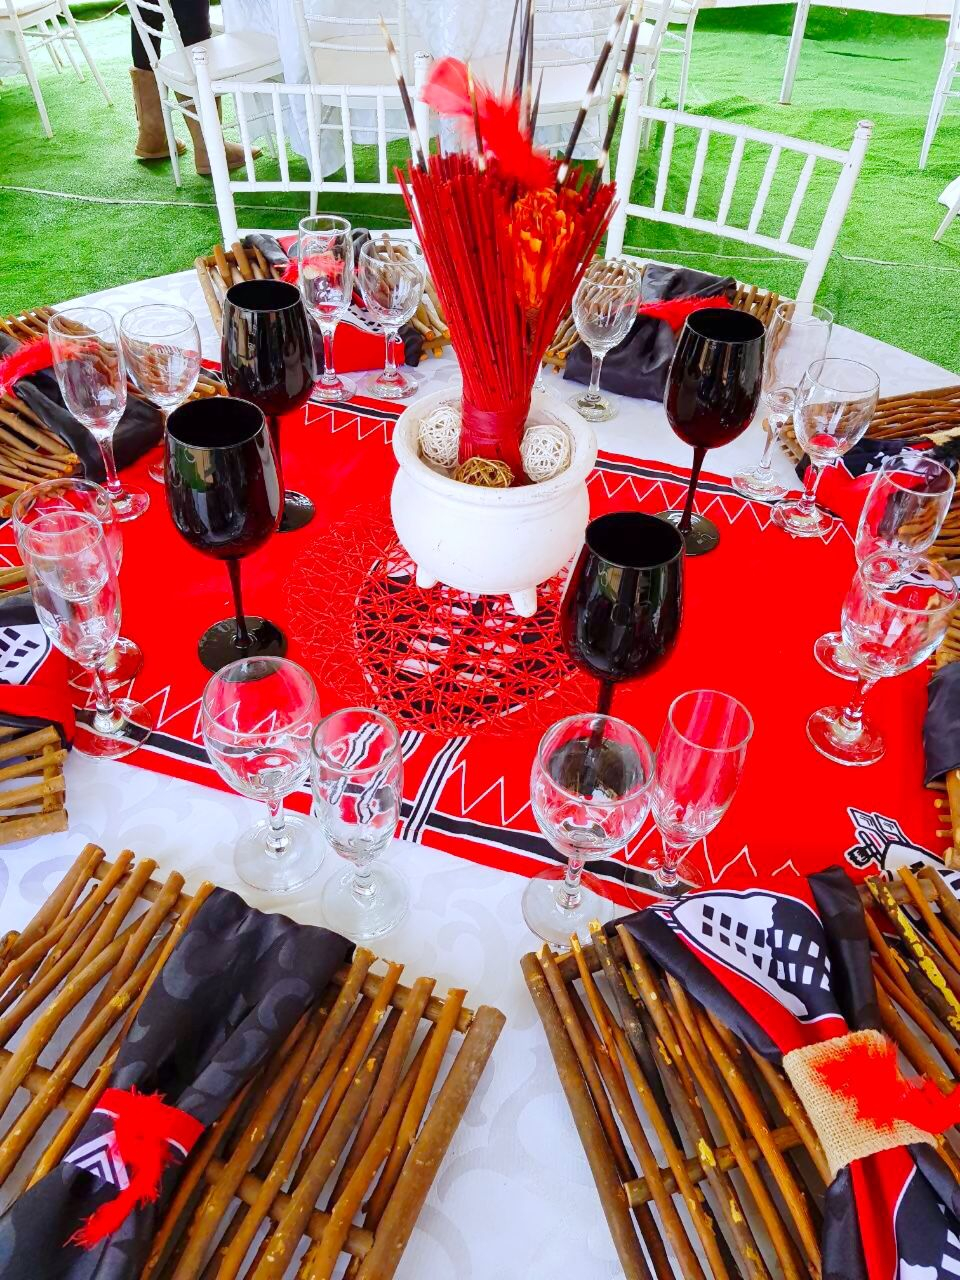 Modern Black and White Wedding Decor Wedding Decoration Blue Red White Traditional Swazi Decor At